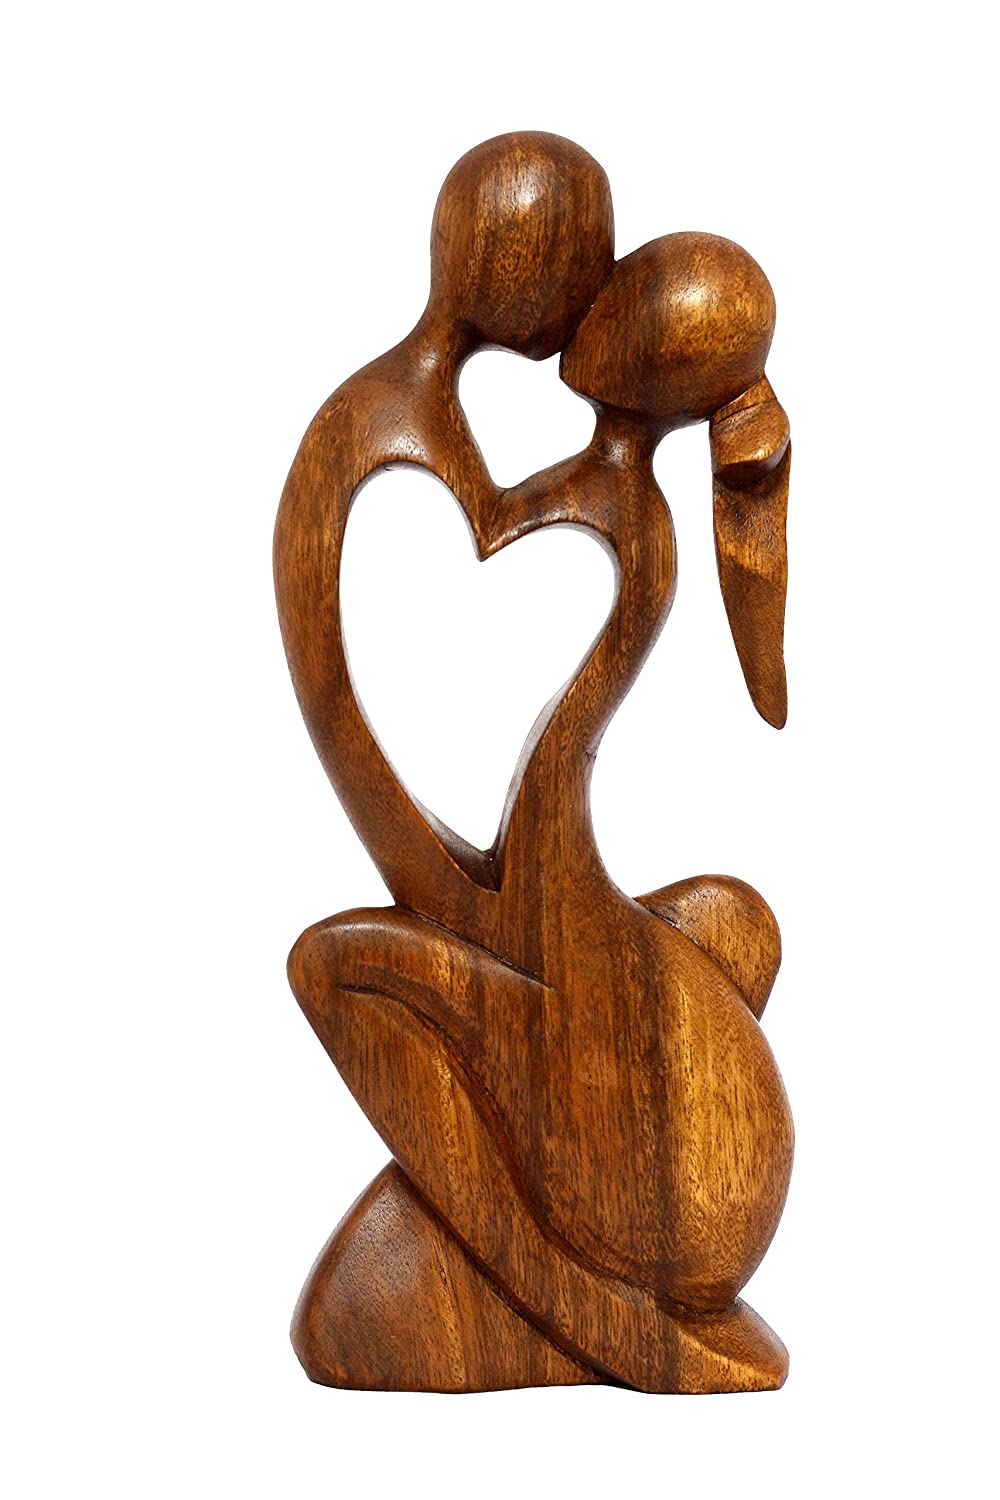 "G6 Collection 12"" Wooden Handmade Abstract Sculpture Statue Handcrafted - Endless Love - Gift Art Decorative Home Decor Figurine Accent Decoration Artwork Handcarved Endless Love"